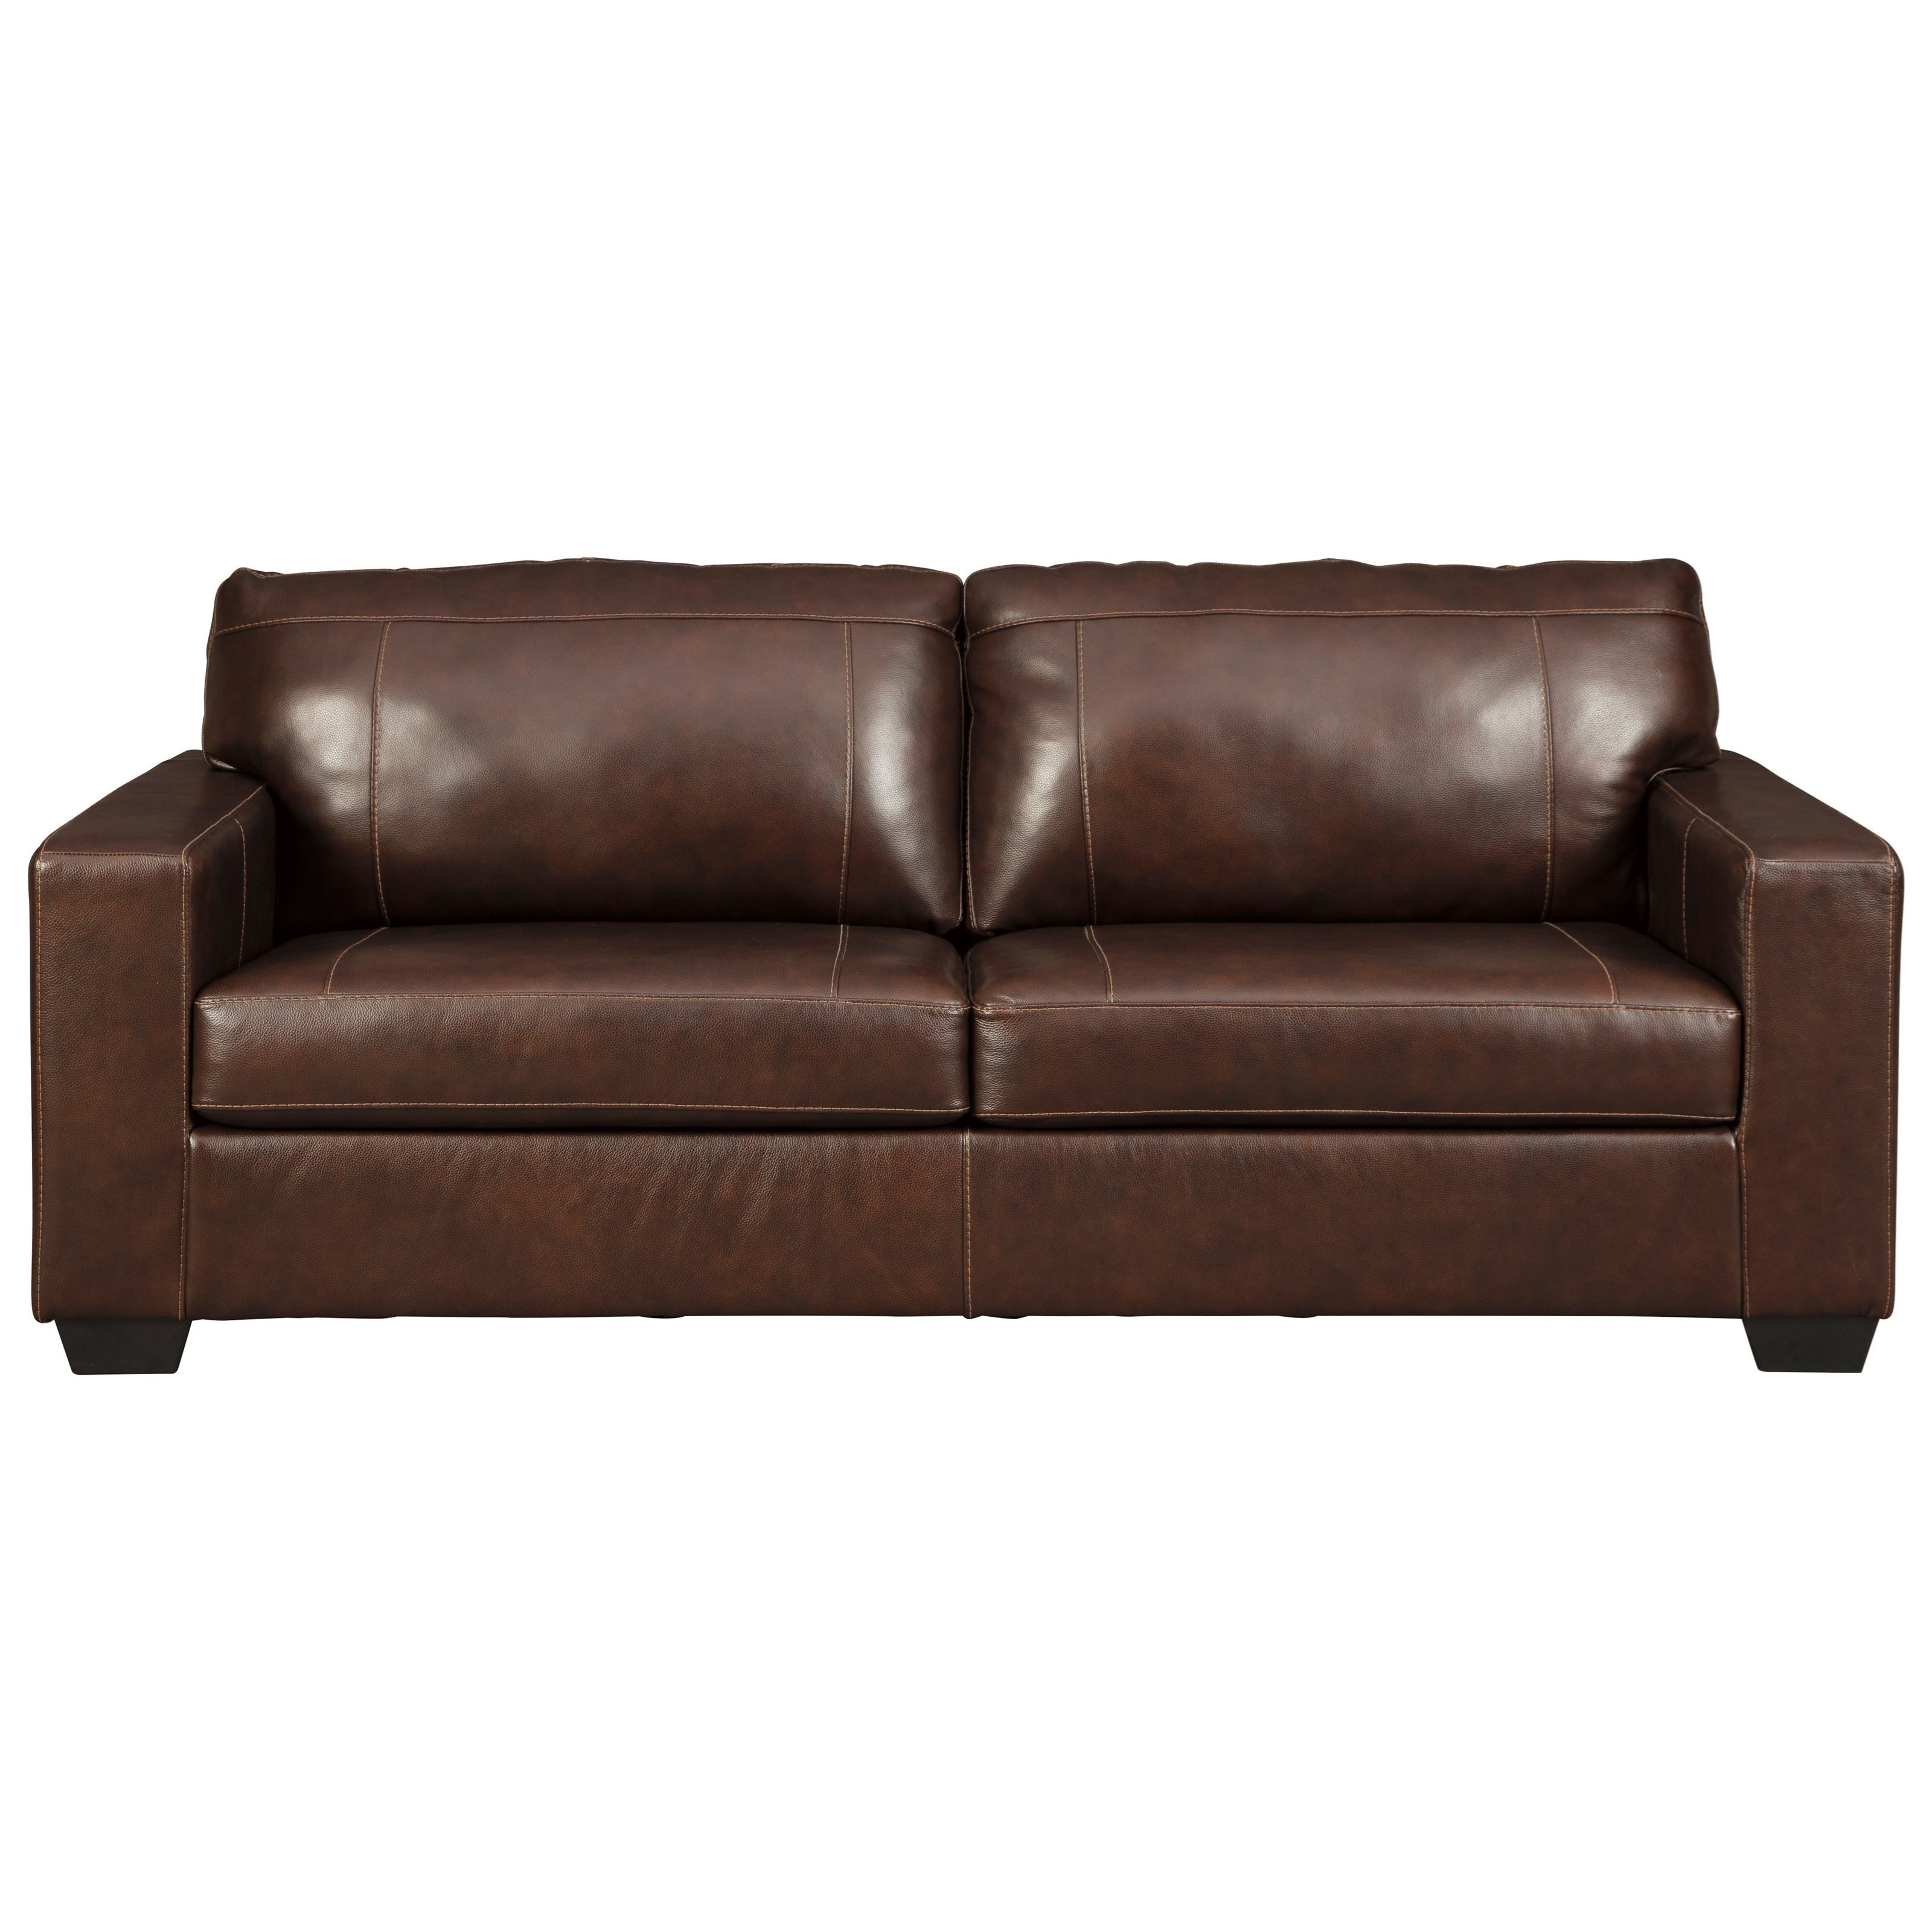 Contemporary Leather Match Sofa with Track Arms and 2 Seat Cushions